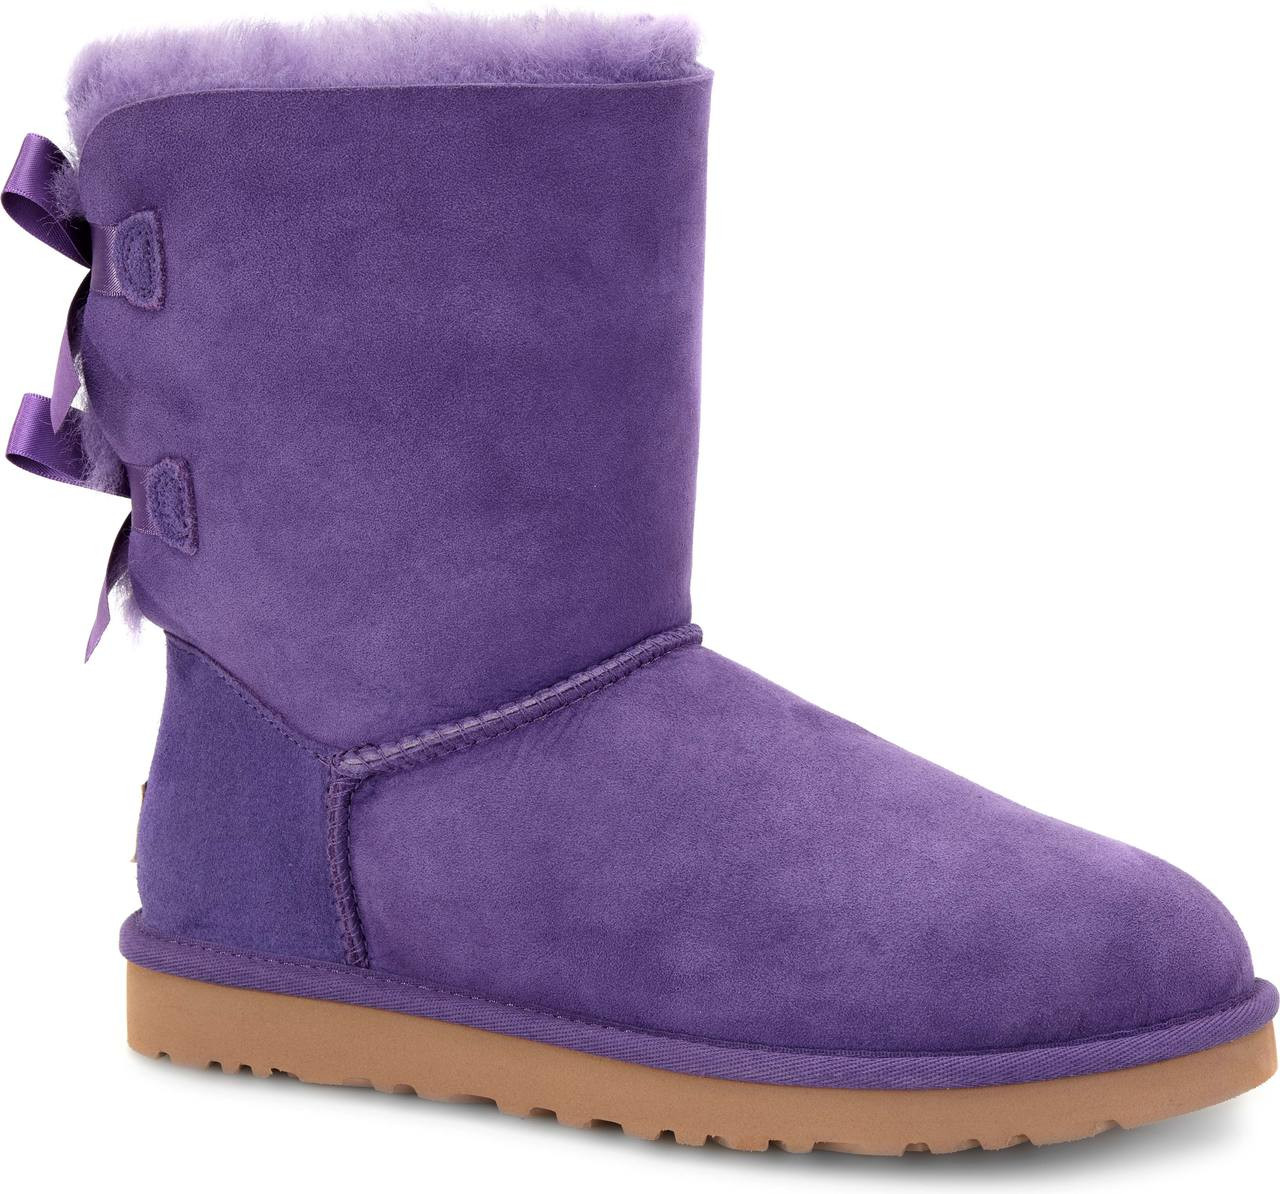 bailey bow uggs for women nz